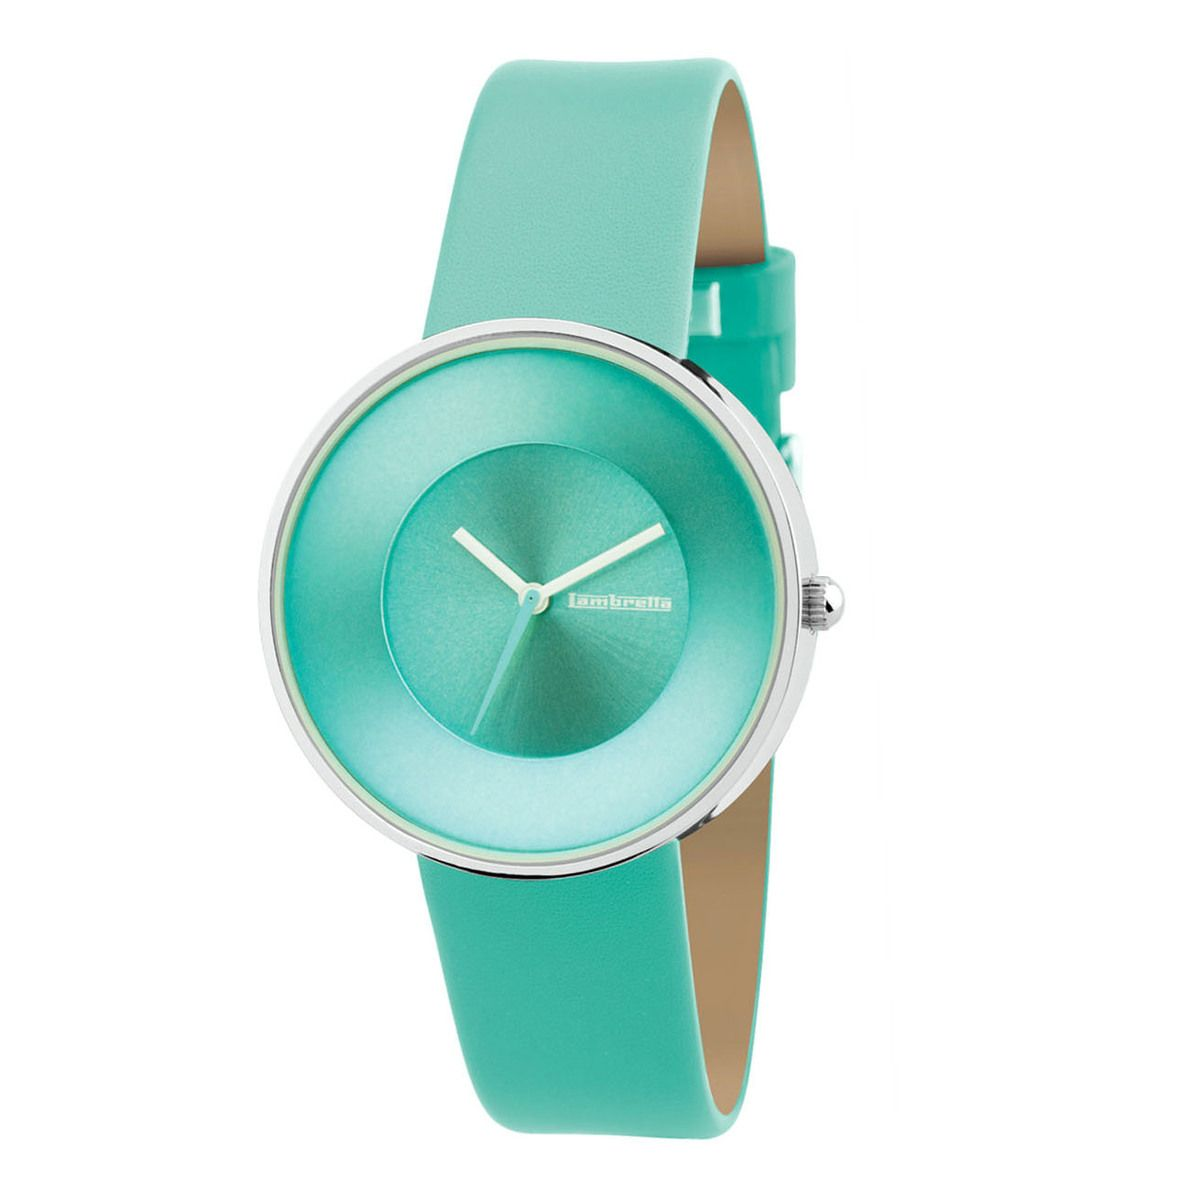 71569fddc38 Lambretta Cielo Watch in  mint !!!